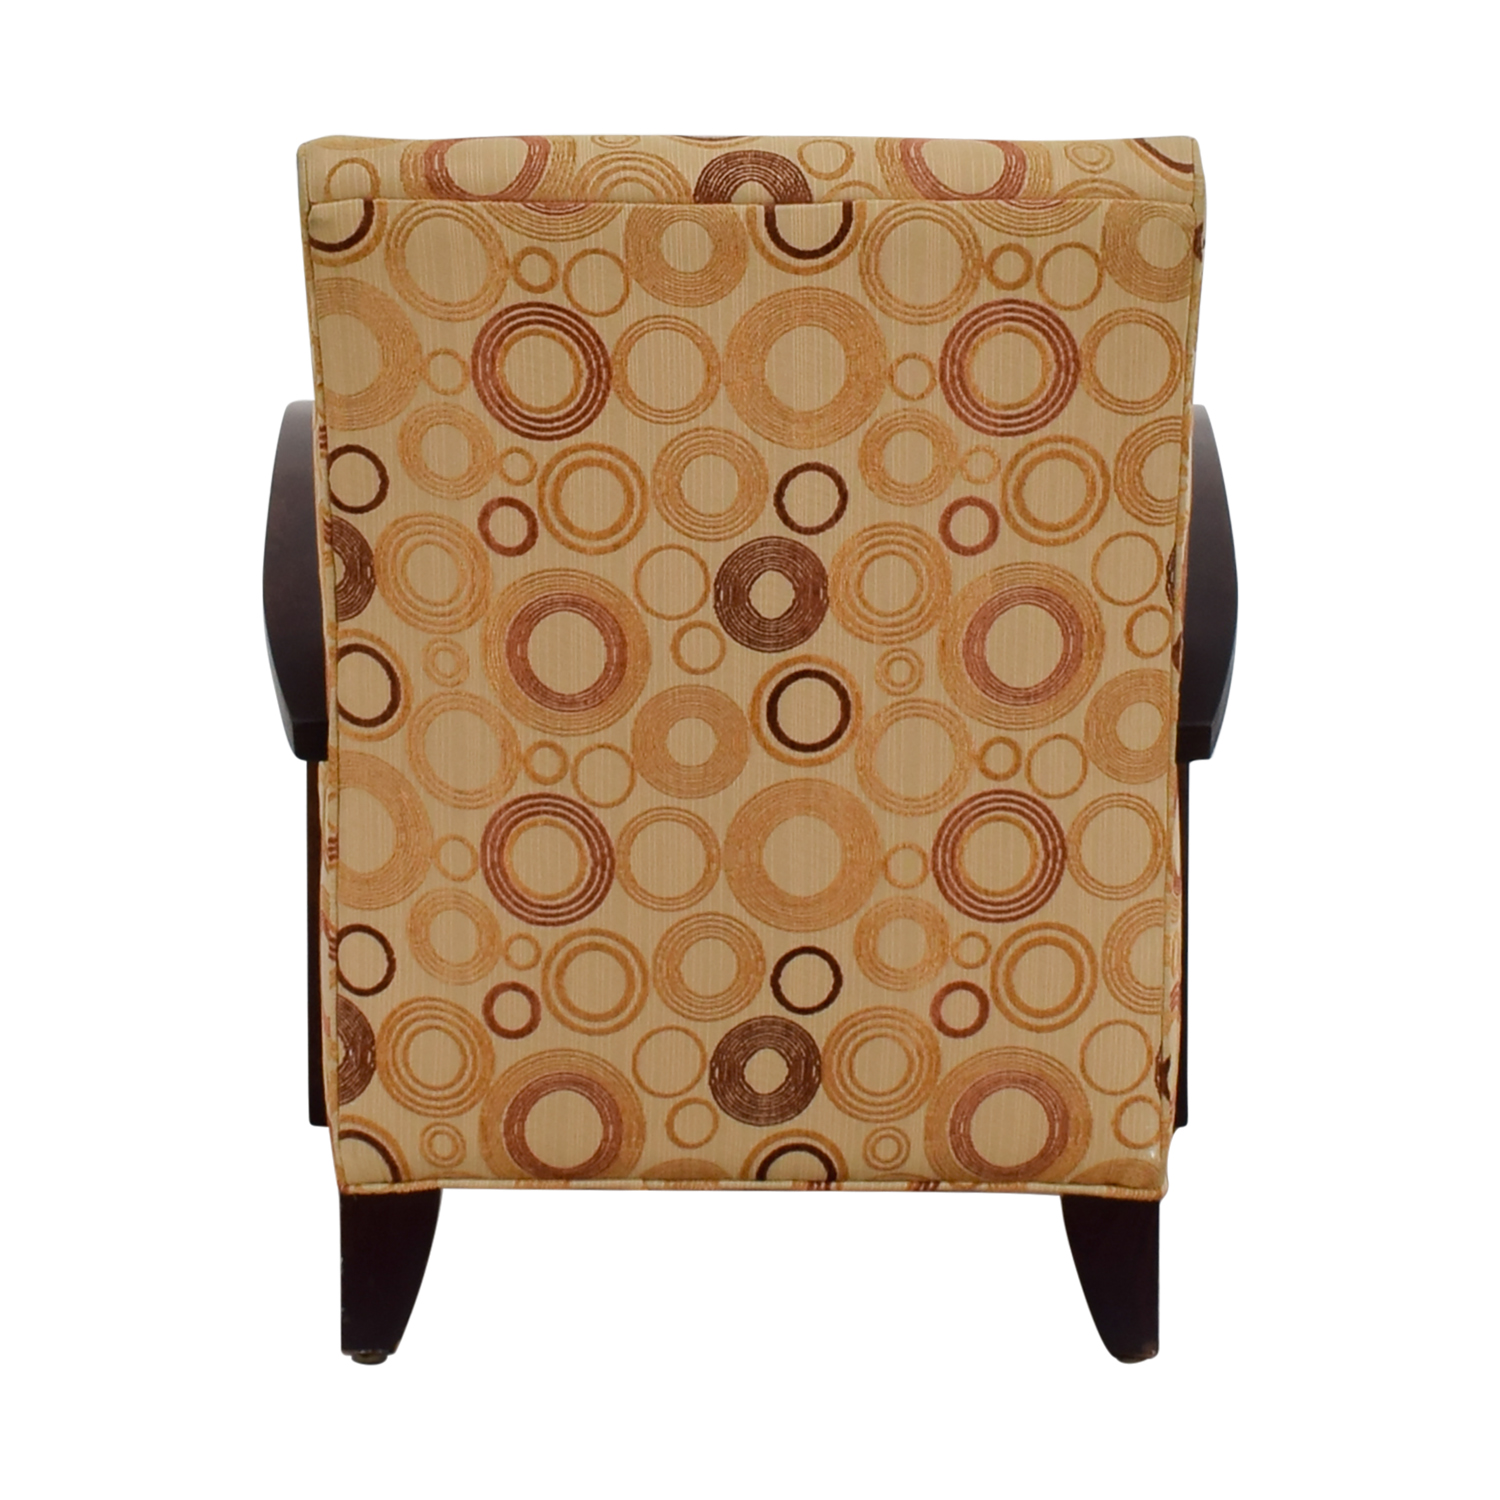 Pier 1 Imports Circle Accent Chair / Chairs